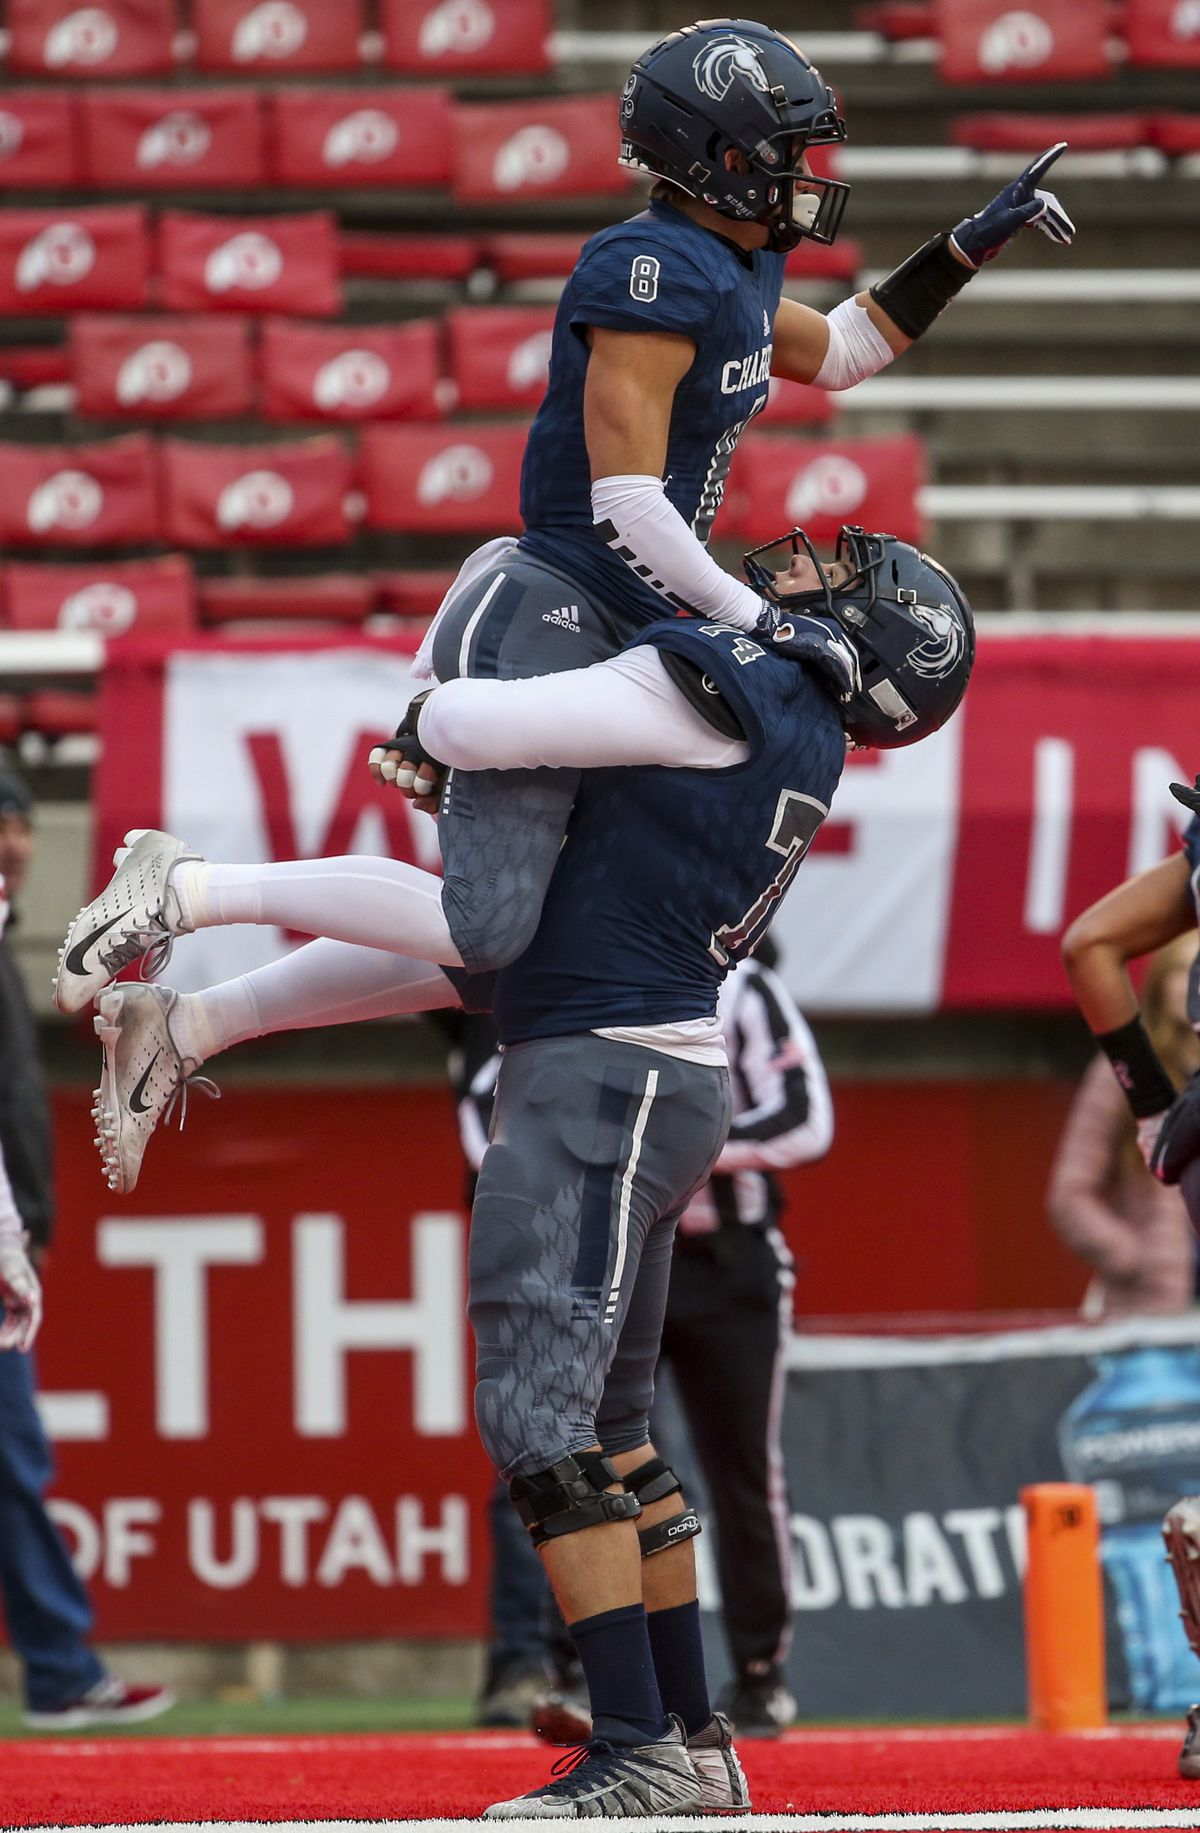 Corner Canyon wide receiver Noah Kjar (8) is lifted into the air by Corner Canyon offensive lineman Jackson Light (74) after scoring a touchdown during the first half of the 6A state high school football game at Rice-Eccles Stadium in Salt Lake City on Friday, Nov. 22, 2019.